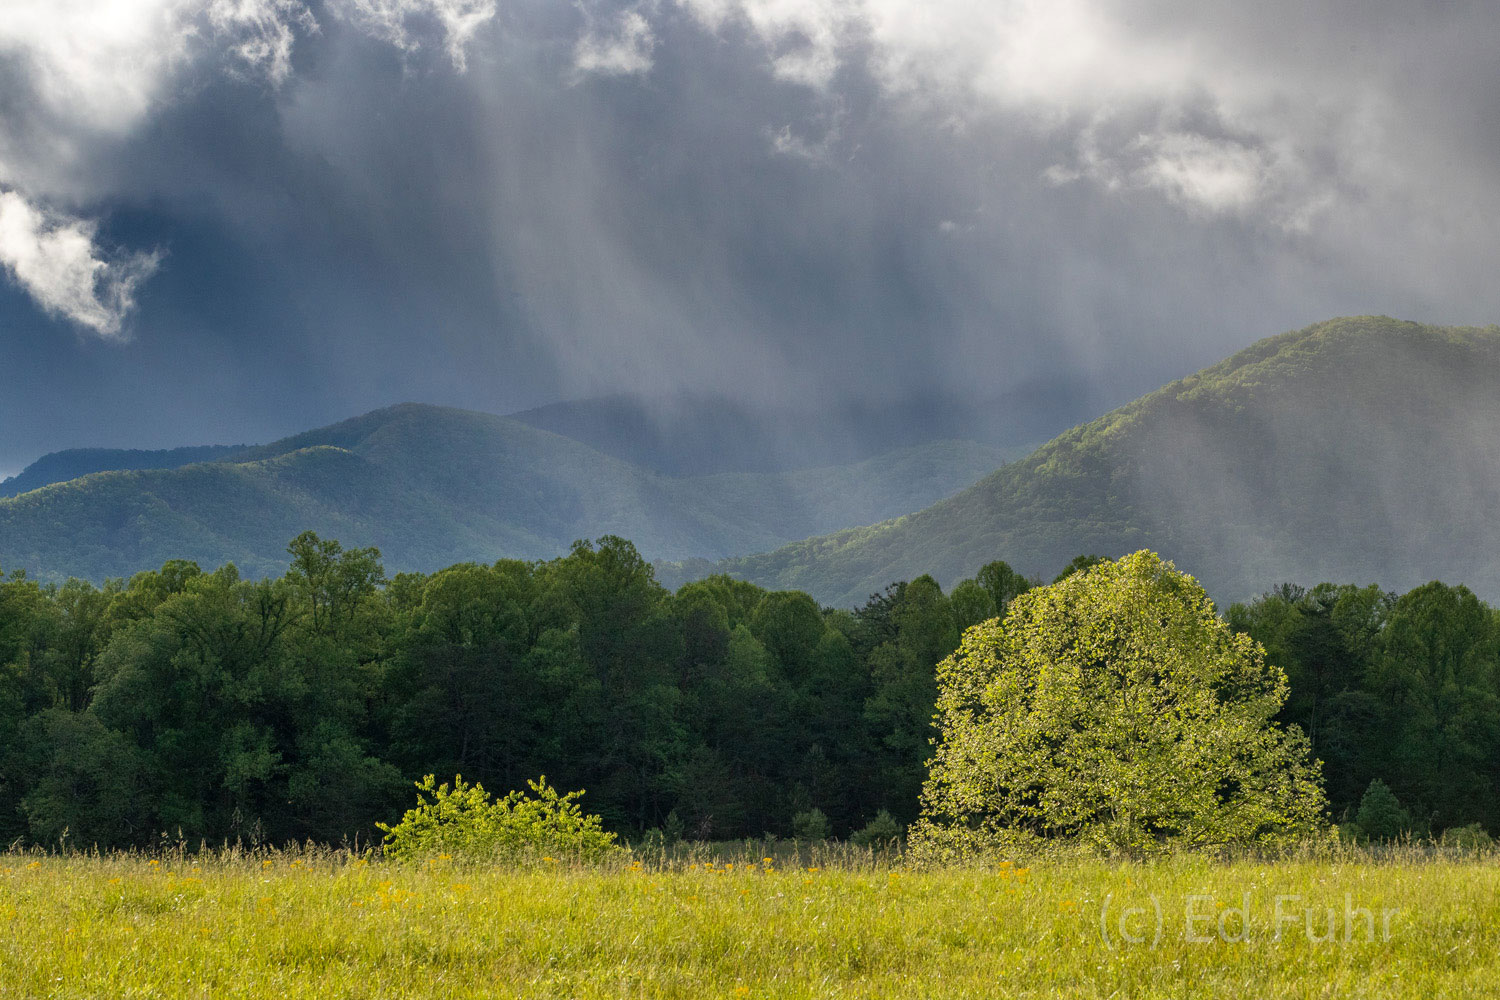 Rays of light break through the arriving storm clouds in Cades Cove.